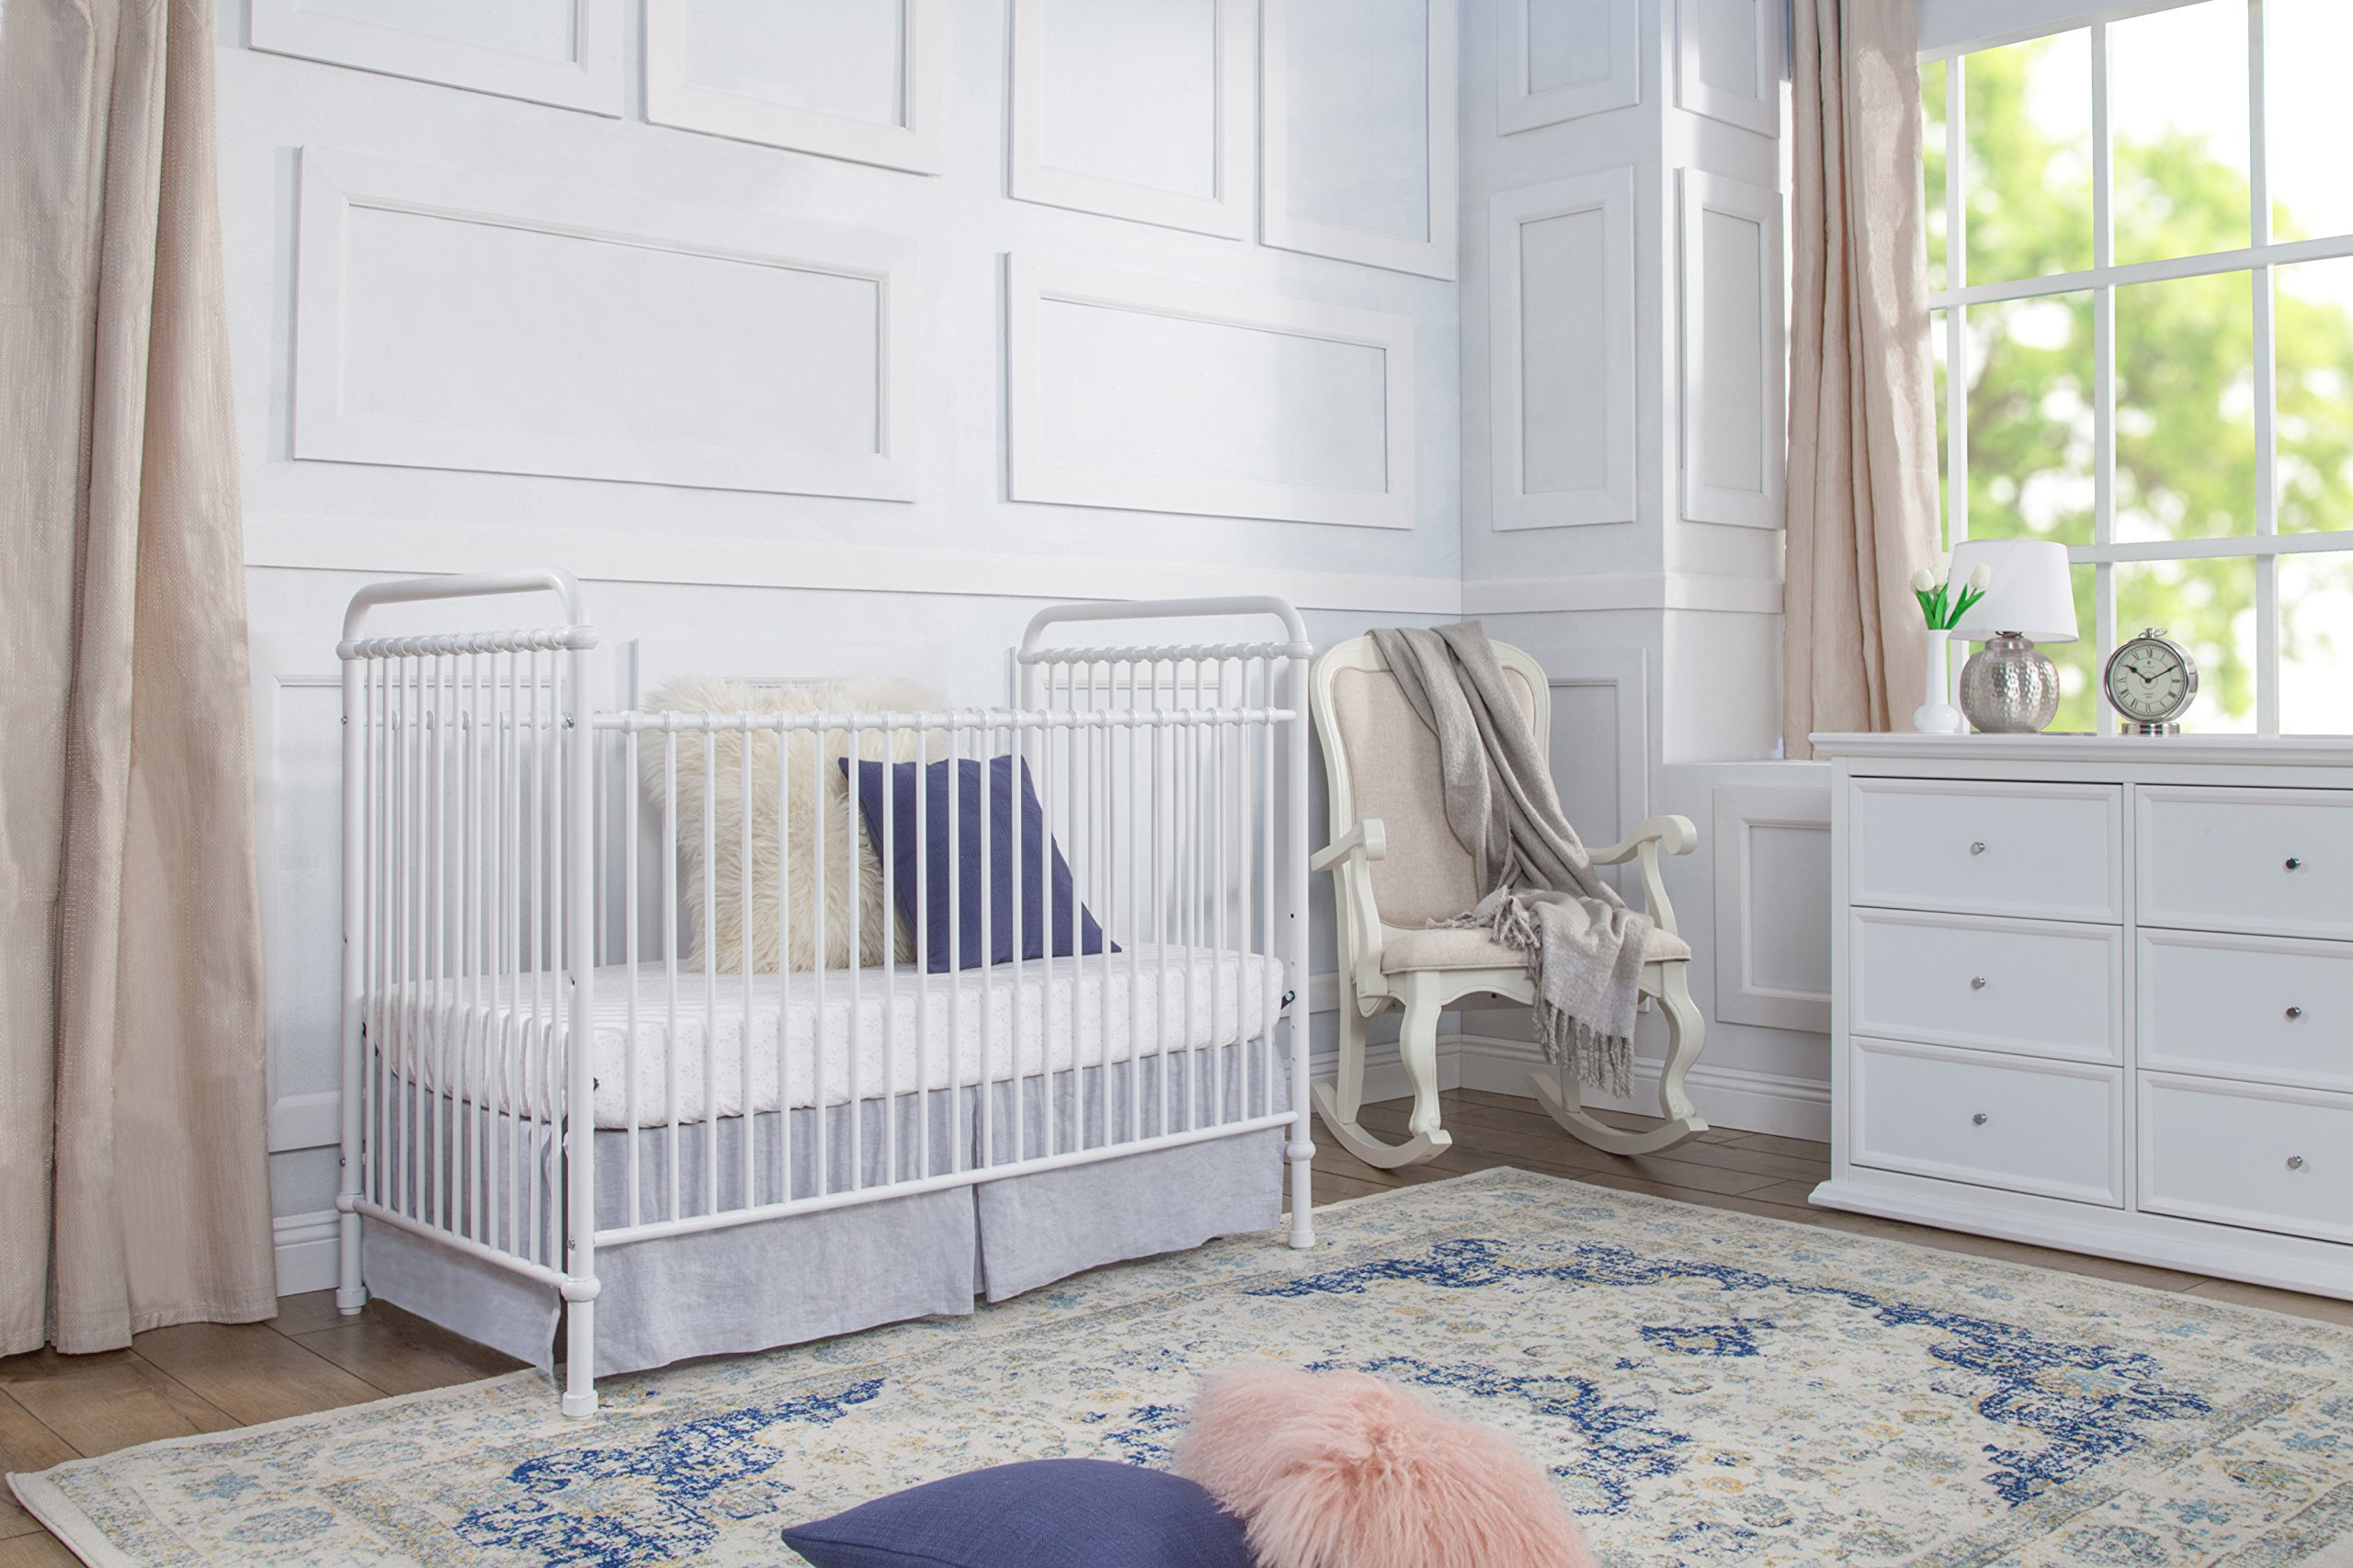 Million Dollar Baby Classic Abigail 3-in-1 Convertible Iron Crib,  Washed White by Million Dollar Baby Classic (Image #3)